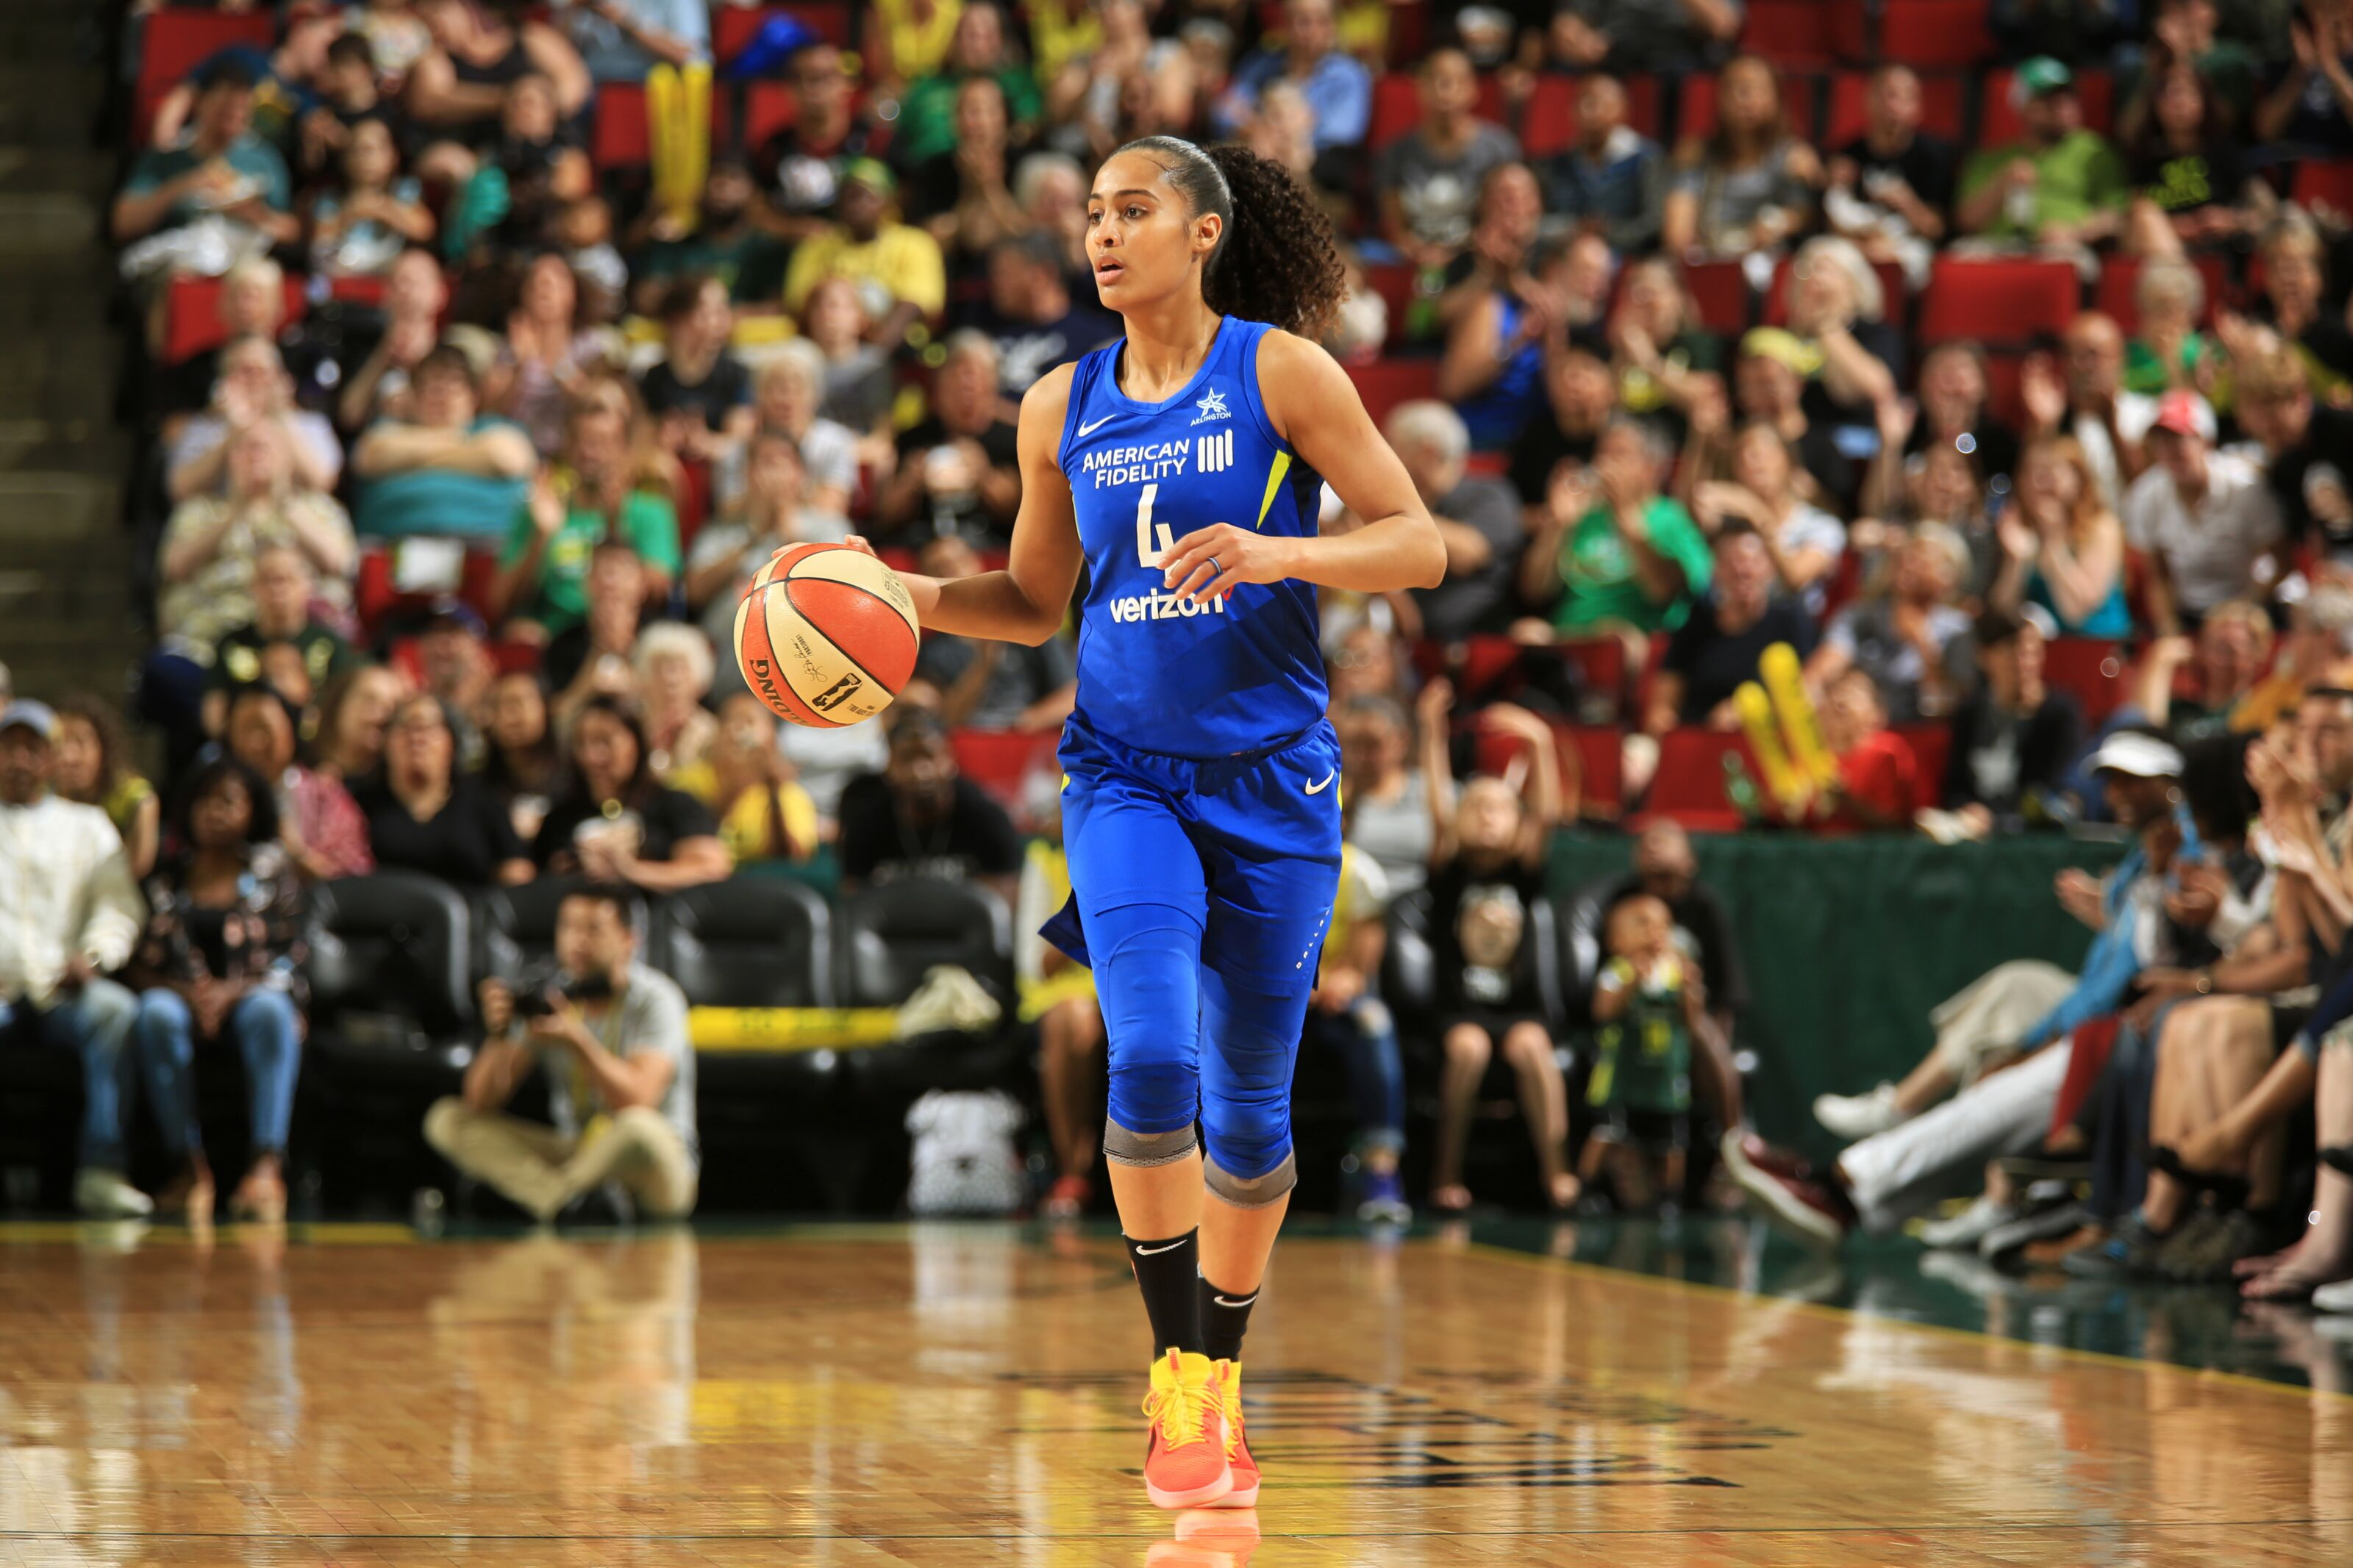 Skylar Diggins-Smith says she does not plan on returning to Dallas